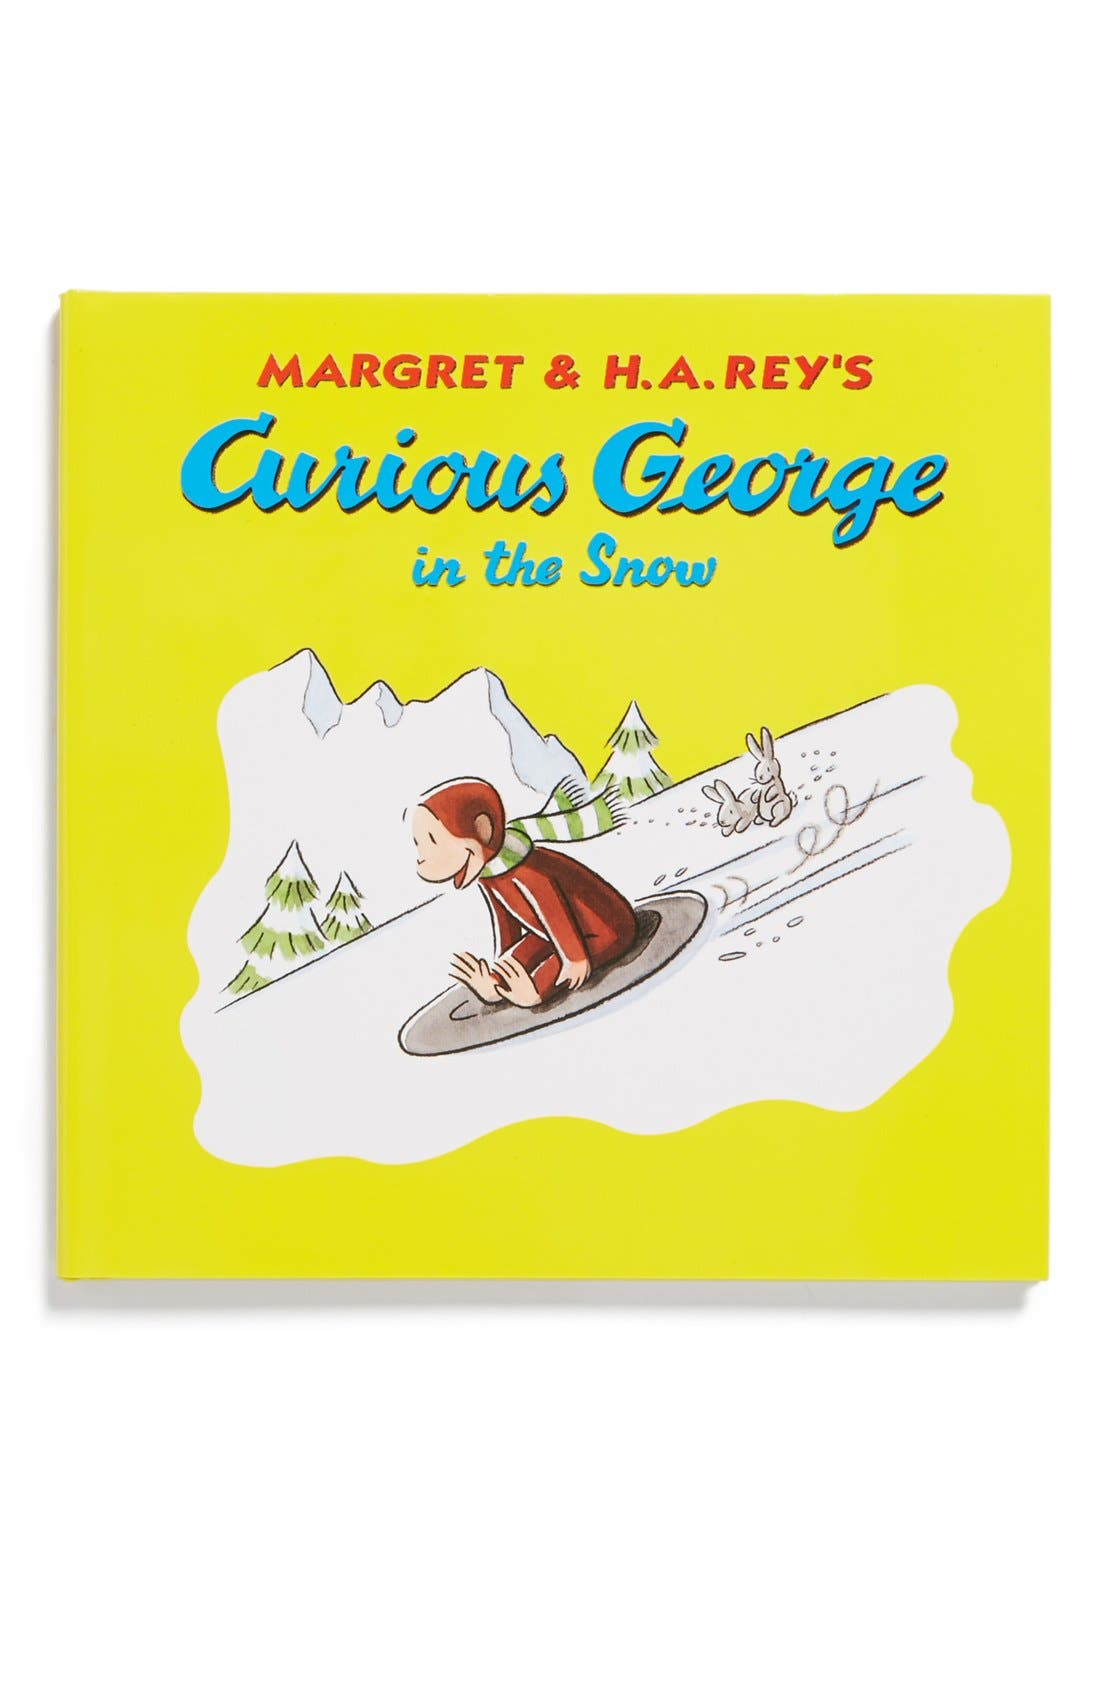 Alternate Image 1 Selected - Margret & H.A. Rey's 'Curious George in the Snow' Book